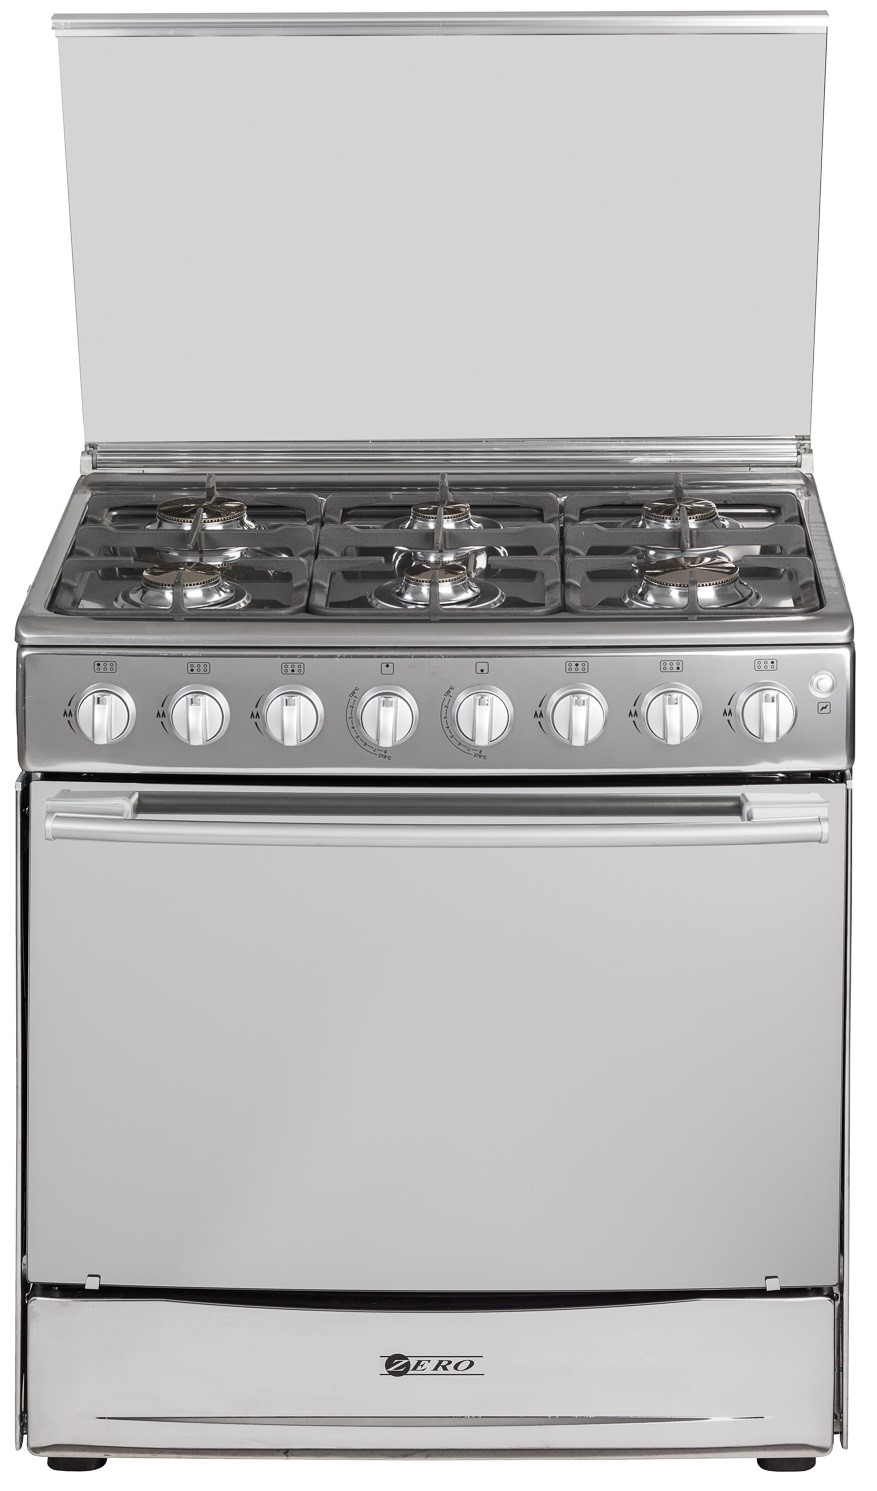 Zero 6 burner Stainless Steel Gas stove with Gas oven and Grill